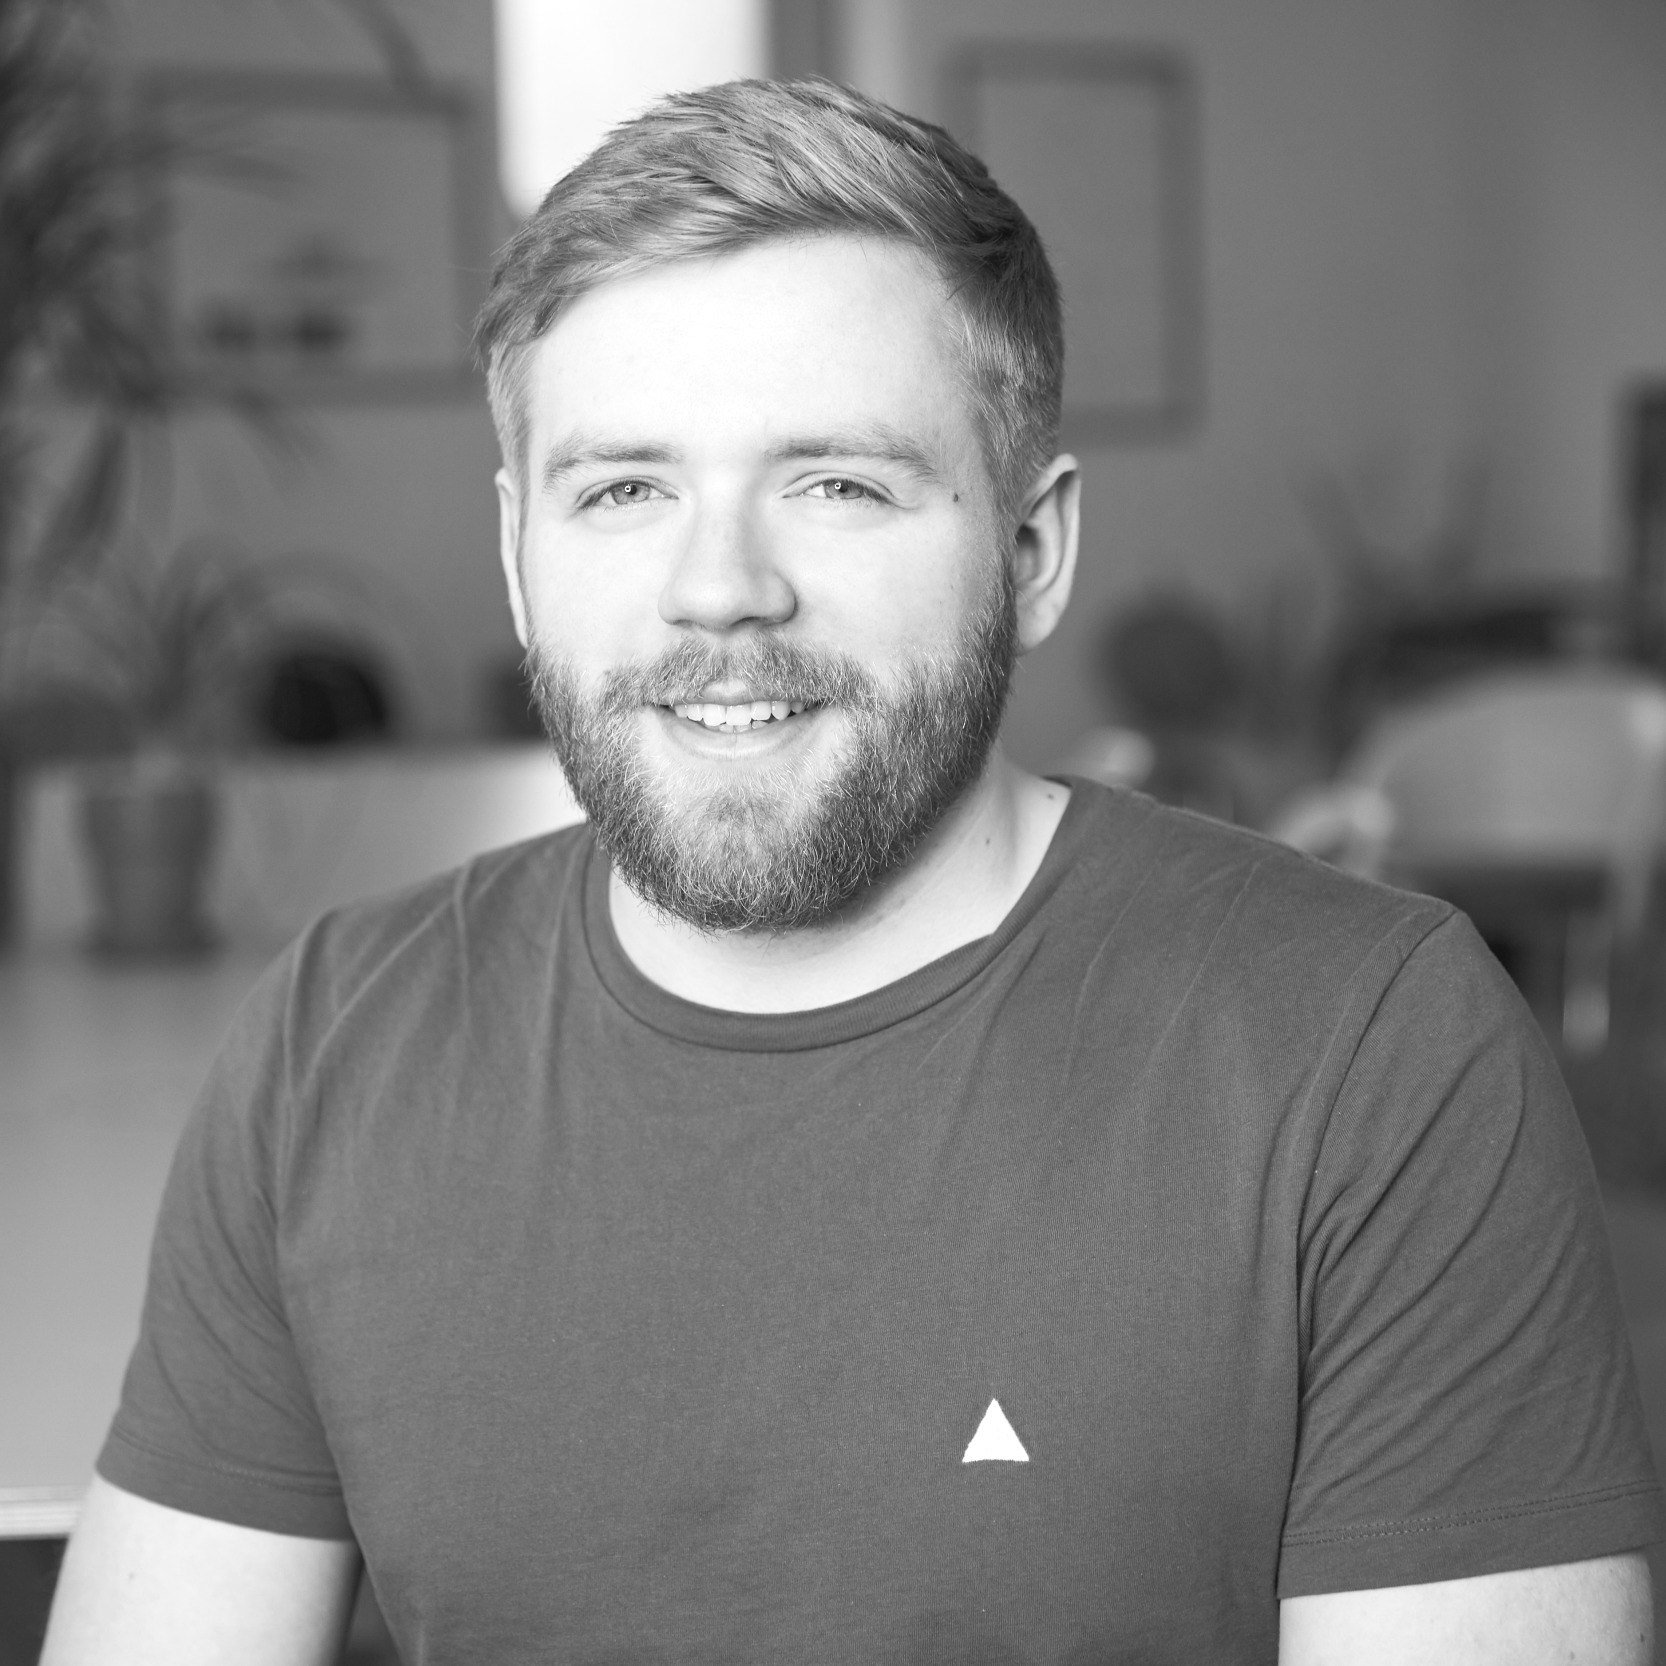 James Mundy - Technical Lead    Full Stack Developer   Often found playing rugby and accumulating interesting, but useless trivia!